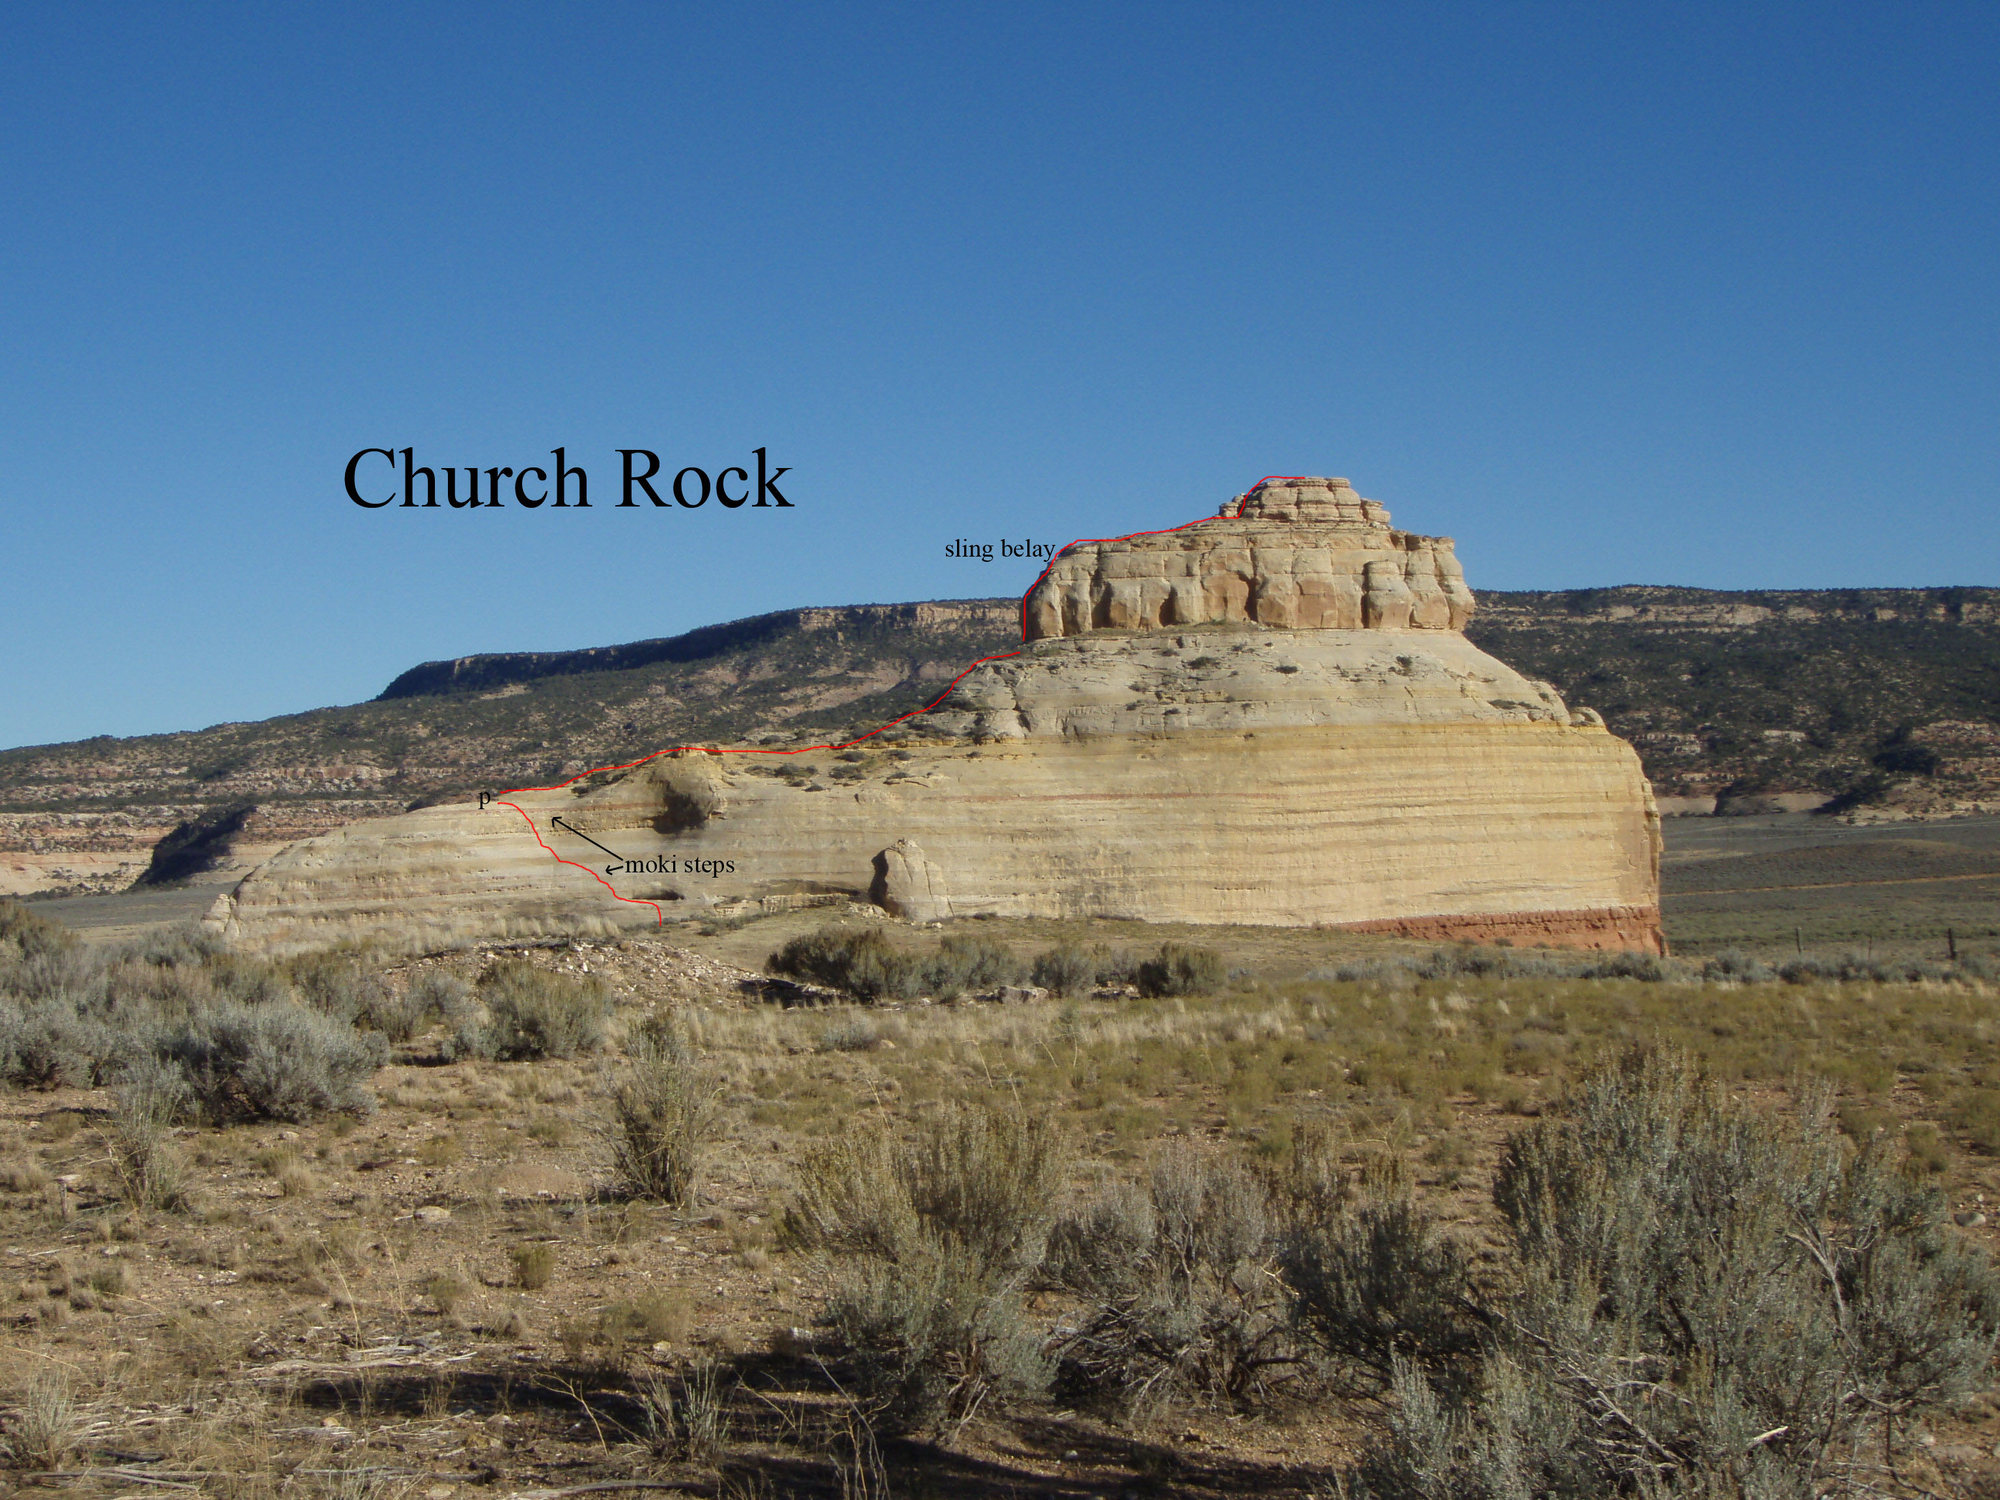 church rock hindu singles Our network of cougar women in cave in rock is the perfect place to make friends  or find a cave in rock christian cougars singles in cave city welcome to church.